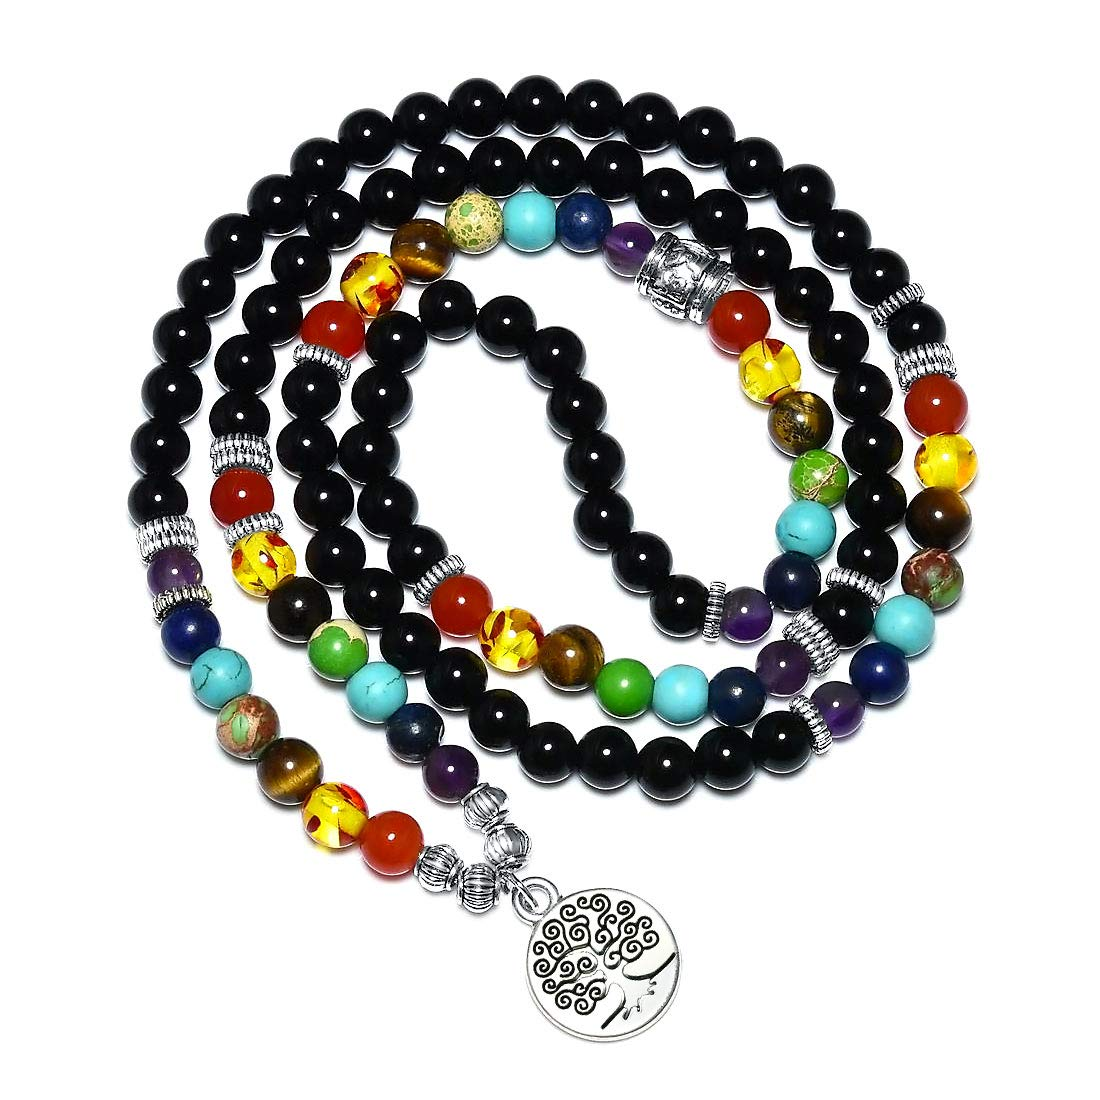 CAT EYE JEWELS 6MM Natural Healing Stone 108 Mala Beads Necklace 7 Chakra Yoga Buddhist Meditation Rosary Prayer Tree of Life Charm Bracelet Lava Rock Beads Diffuser Bracelet PB-6P